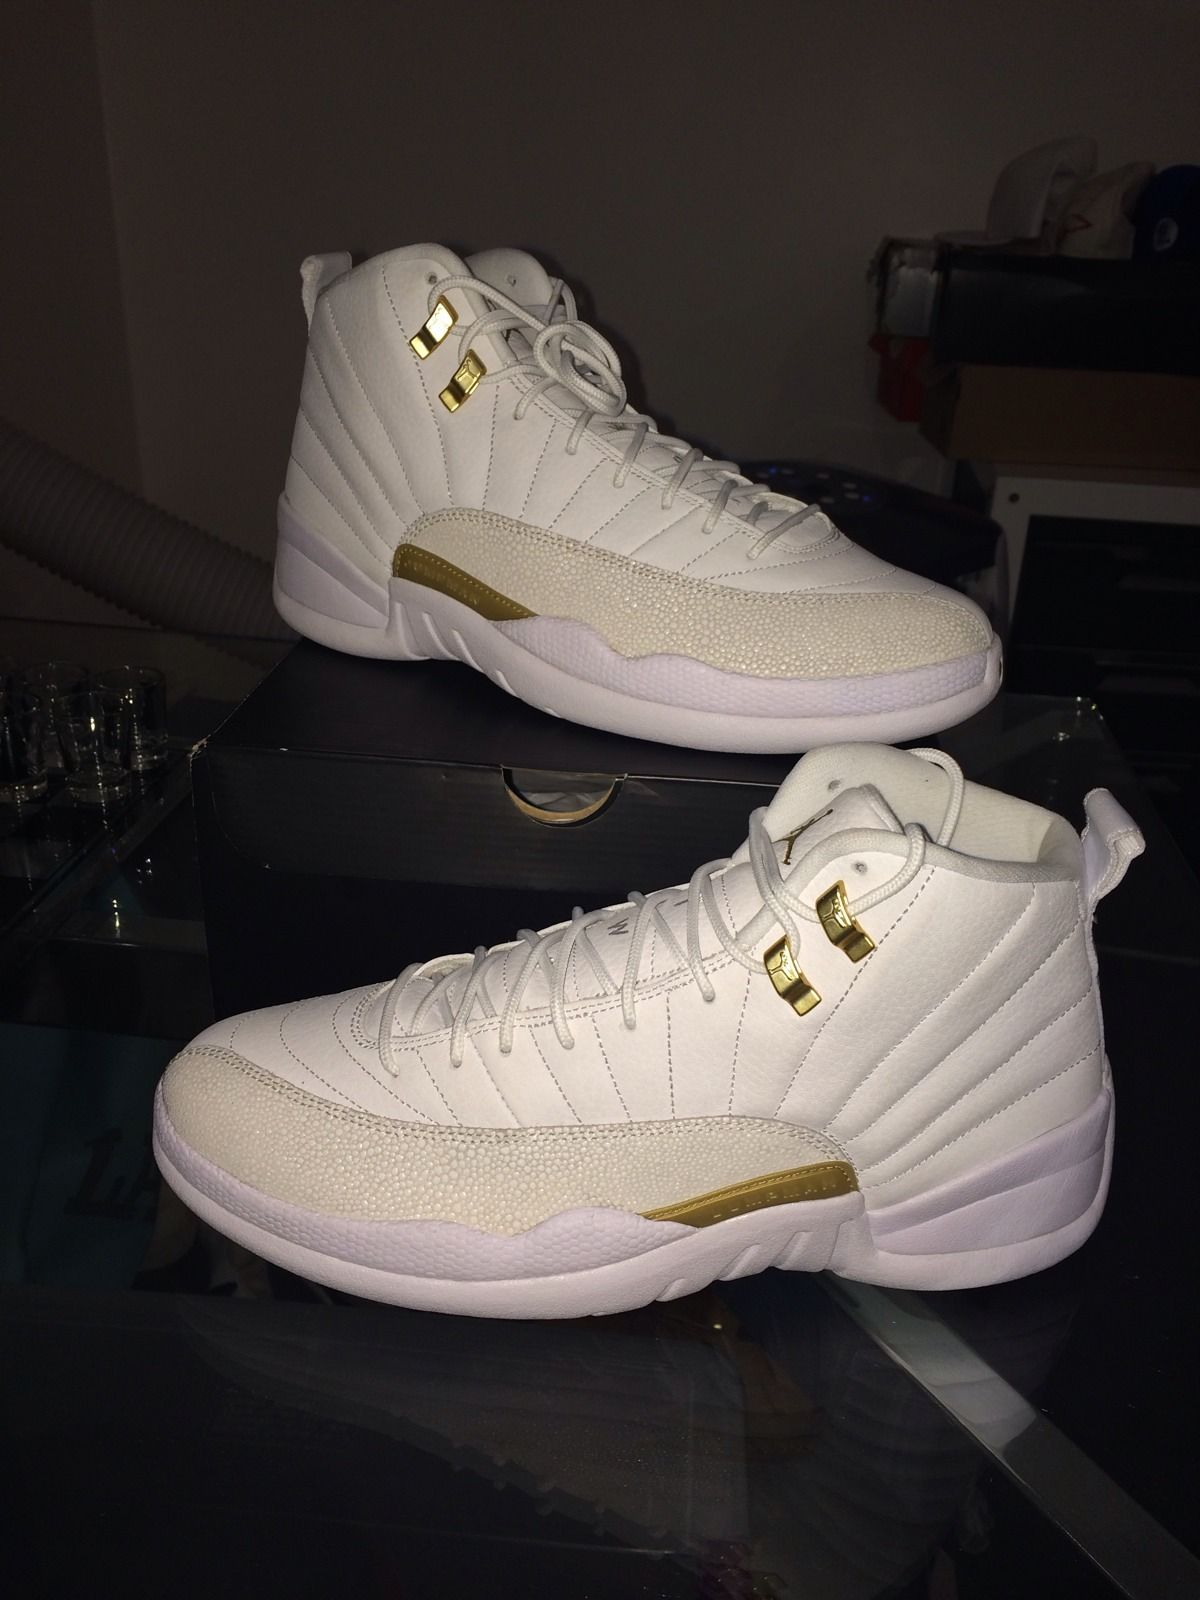 Drake's OVO Nike Air Jordan XII For Sale On eBay? : DeFY. New York-Sneakers ,Music,Fashion,Life.